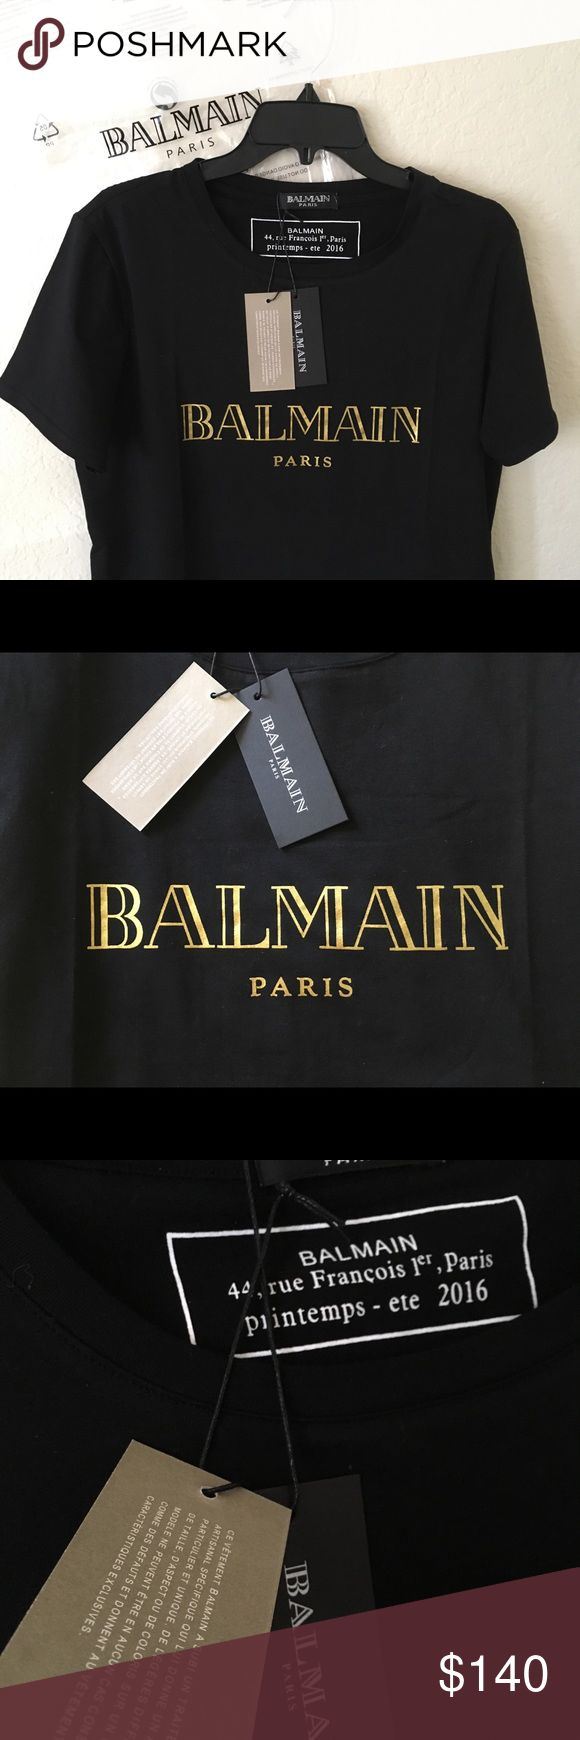 New Balmain Gold Logo Shirt Brand new, sealed in bag !  Hey guys, this listing is a bit different ! I am listing for a store called Venice Apparel Goods, which is located in California and gets exclusive brands! They only have a few of these in stock!   - Medium and Large available  - Comes with Balmain Bag & Official Tags - Firs true to size, just a tad loose - same day shipping   Feel free to ask any questions! Balmain Tops Tees - Short Sleeve